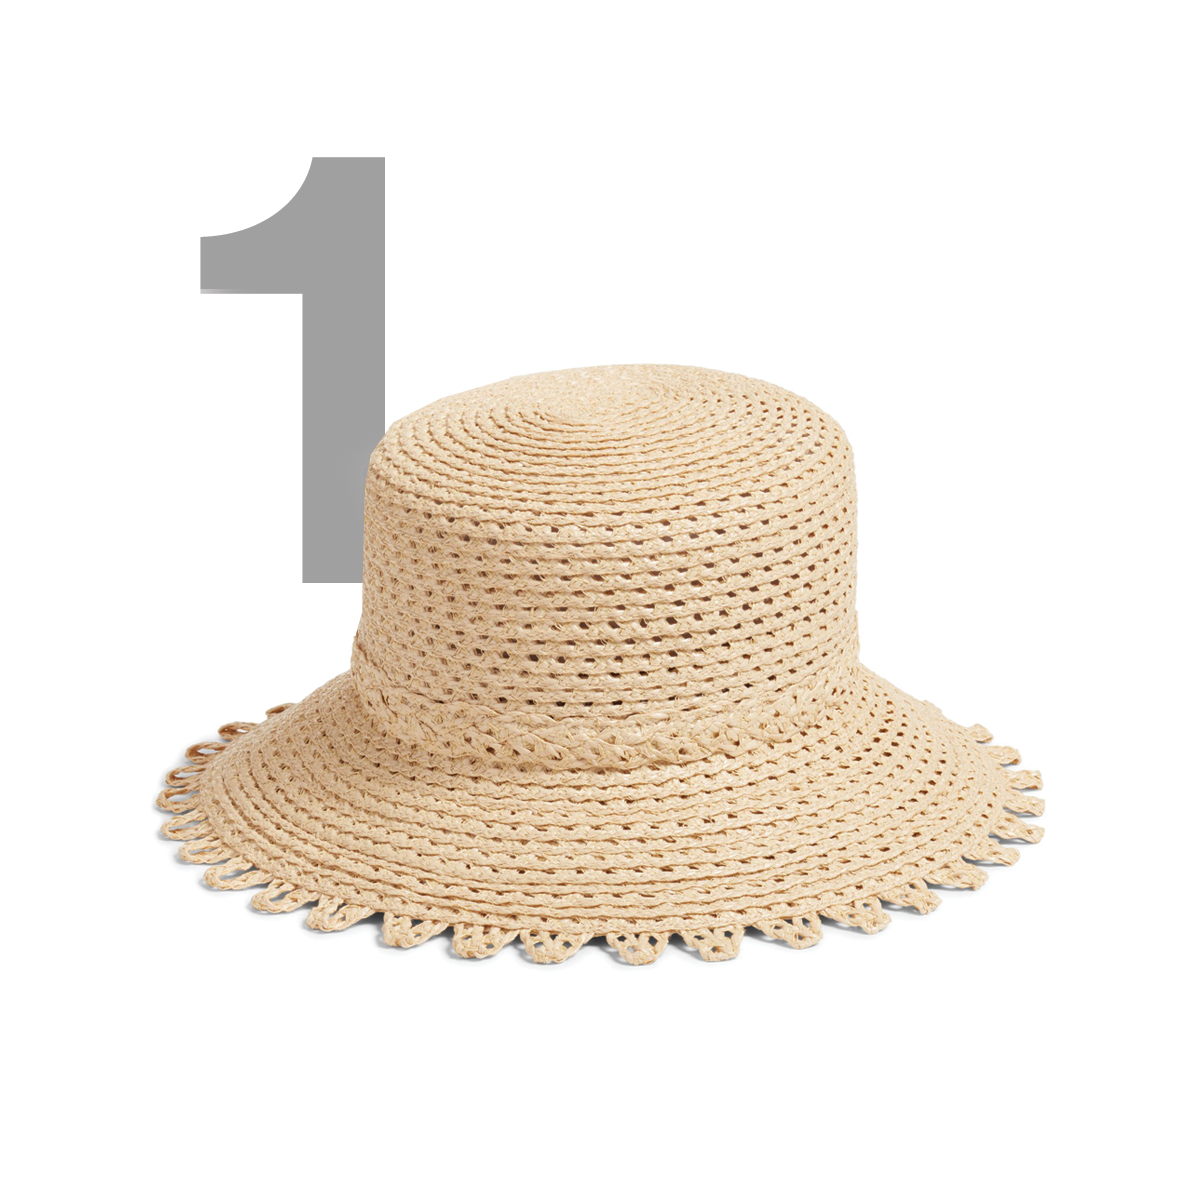 ERIC JAVITS Ibiza Squishee Bucket Hat, available at Nordstrom.